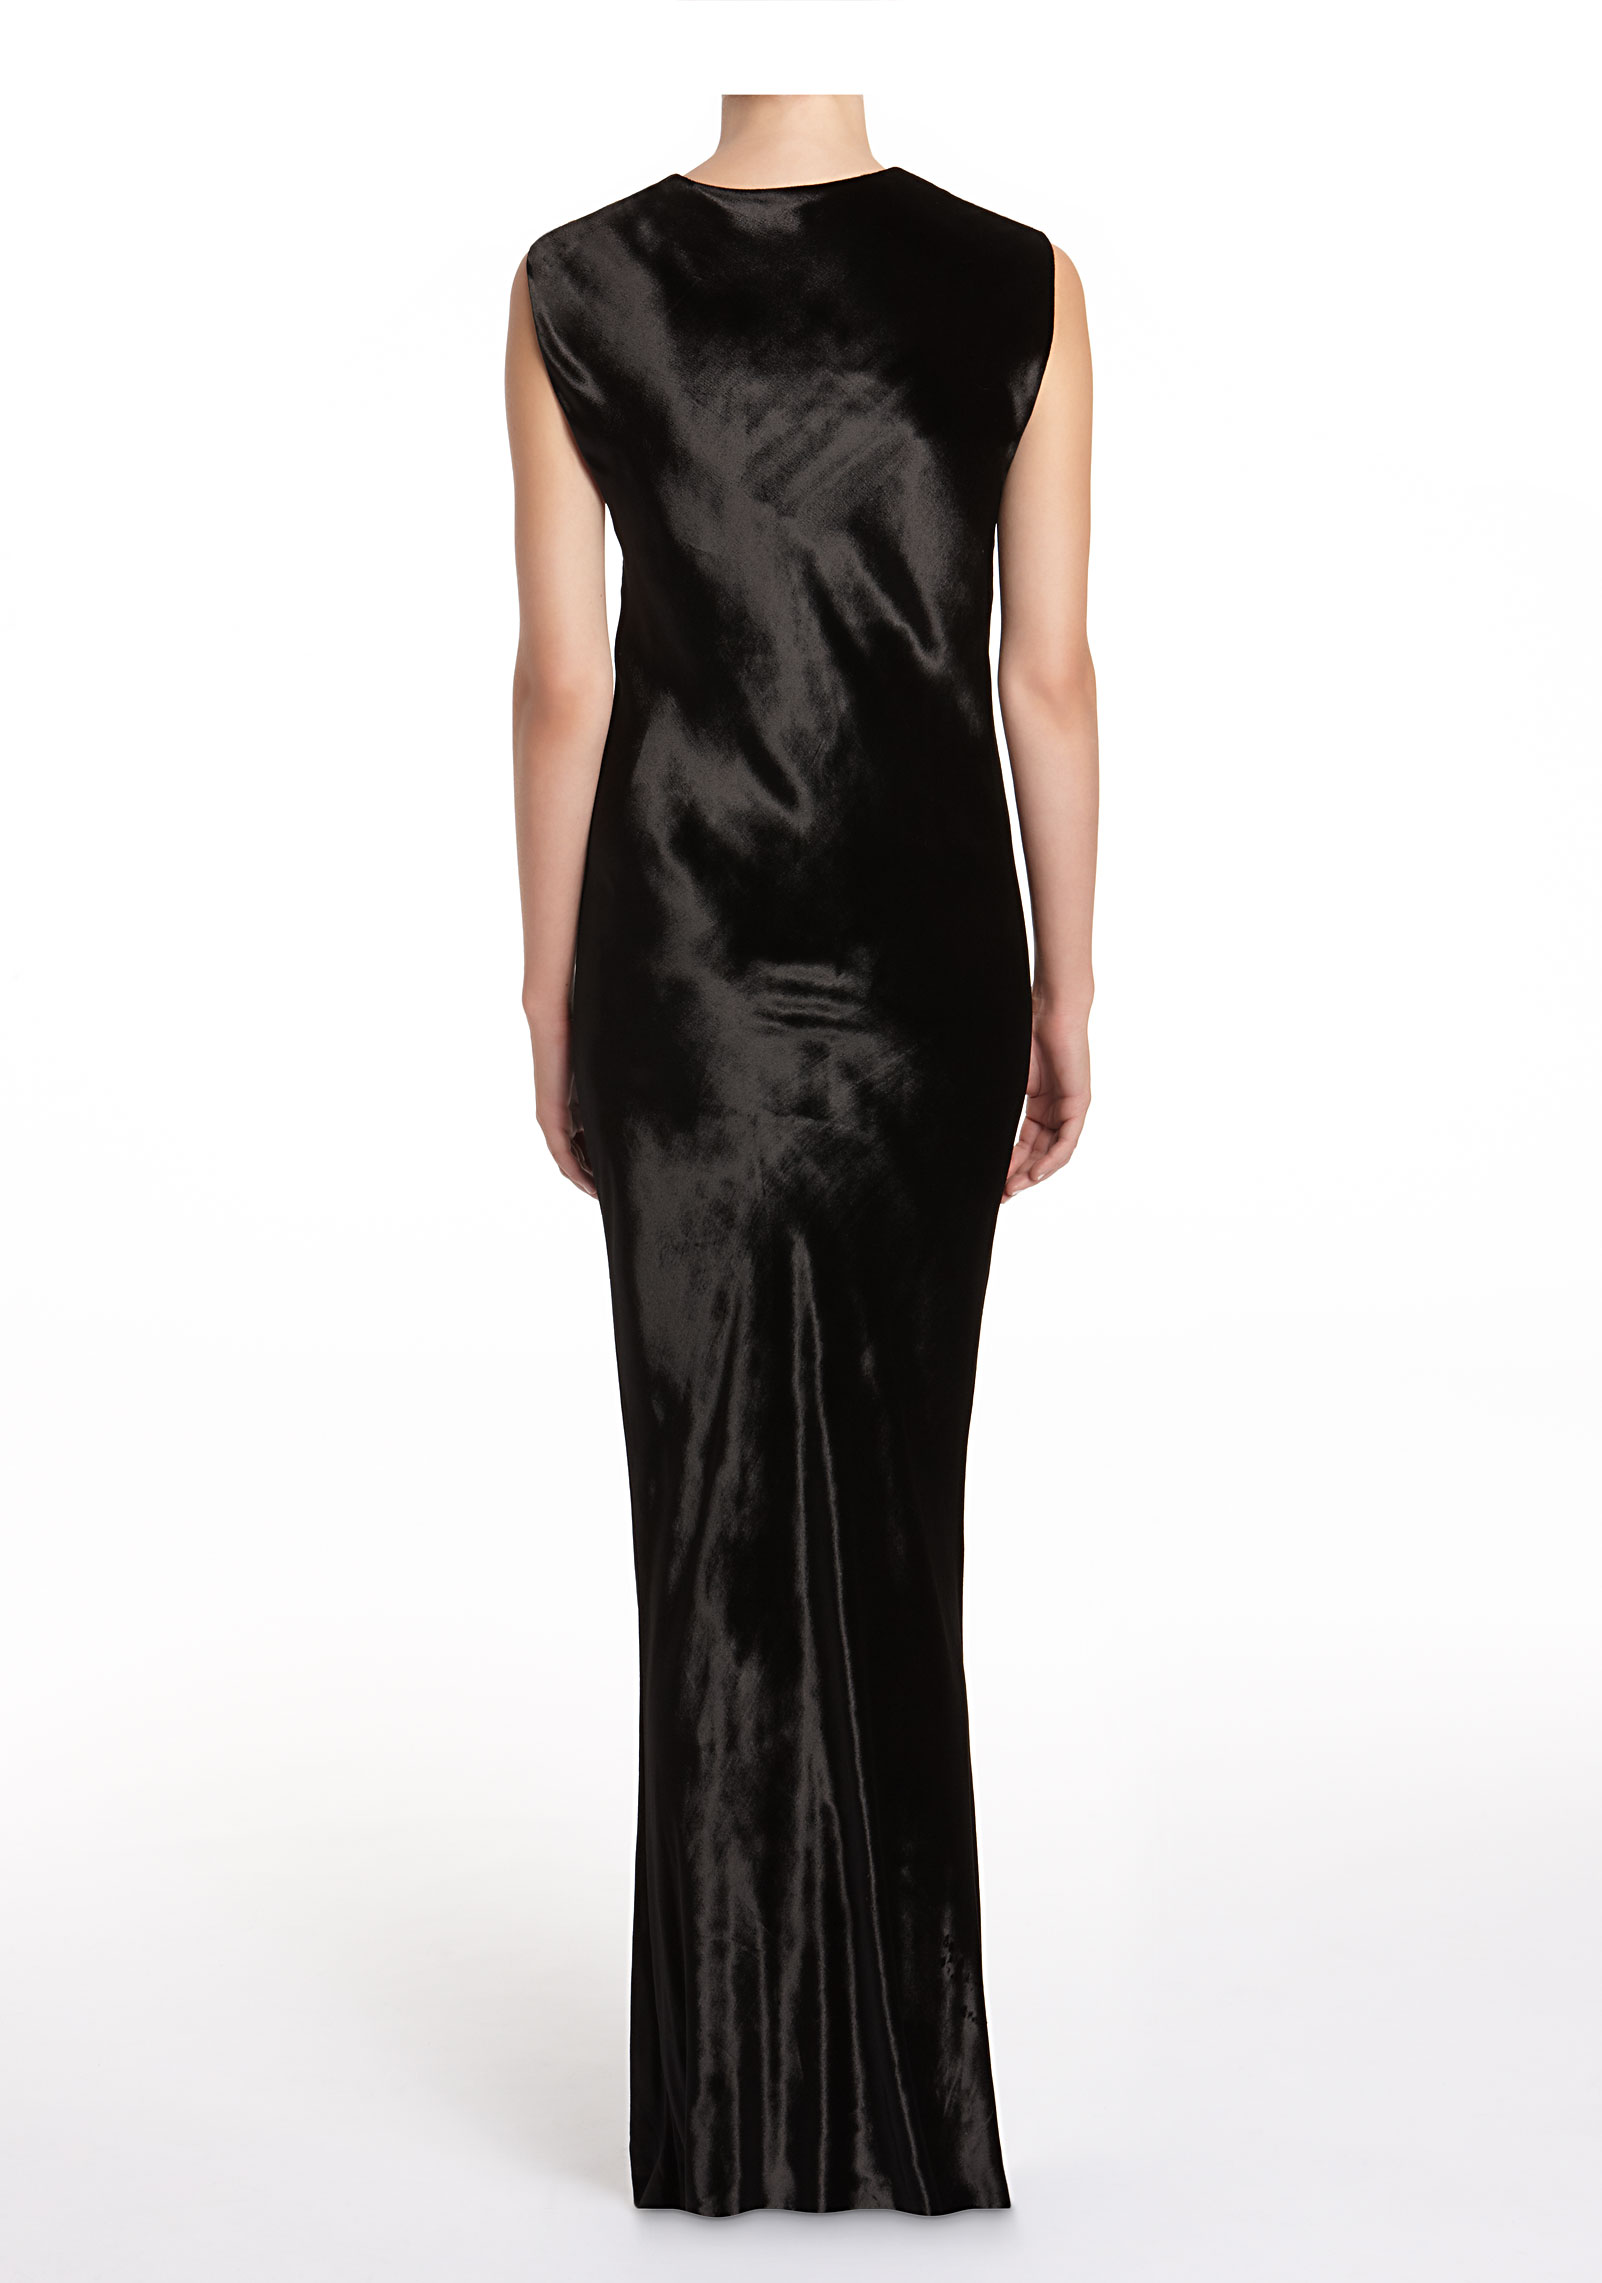 3c4d24b34d45 T By Alexander Wang Panne Velvet Long Dress in Black - Lyst